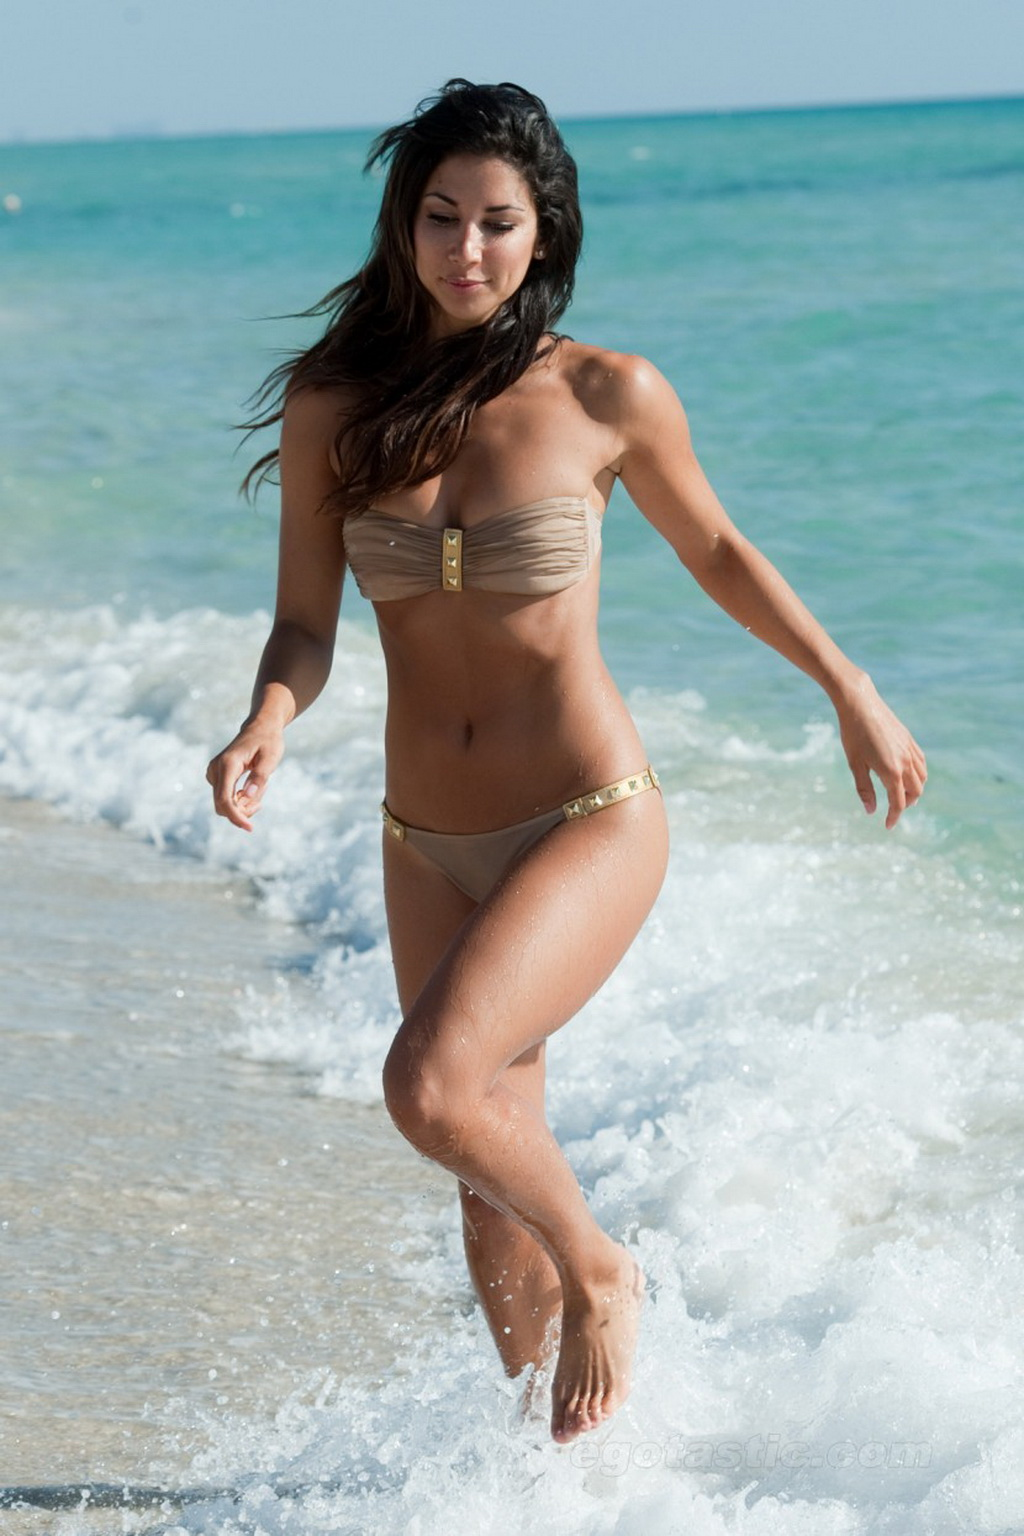 Leilani Dowding topless showing off her small tits on Miami Beach